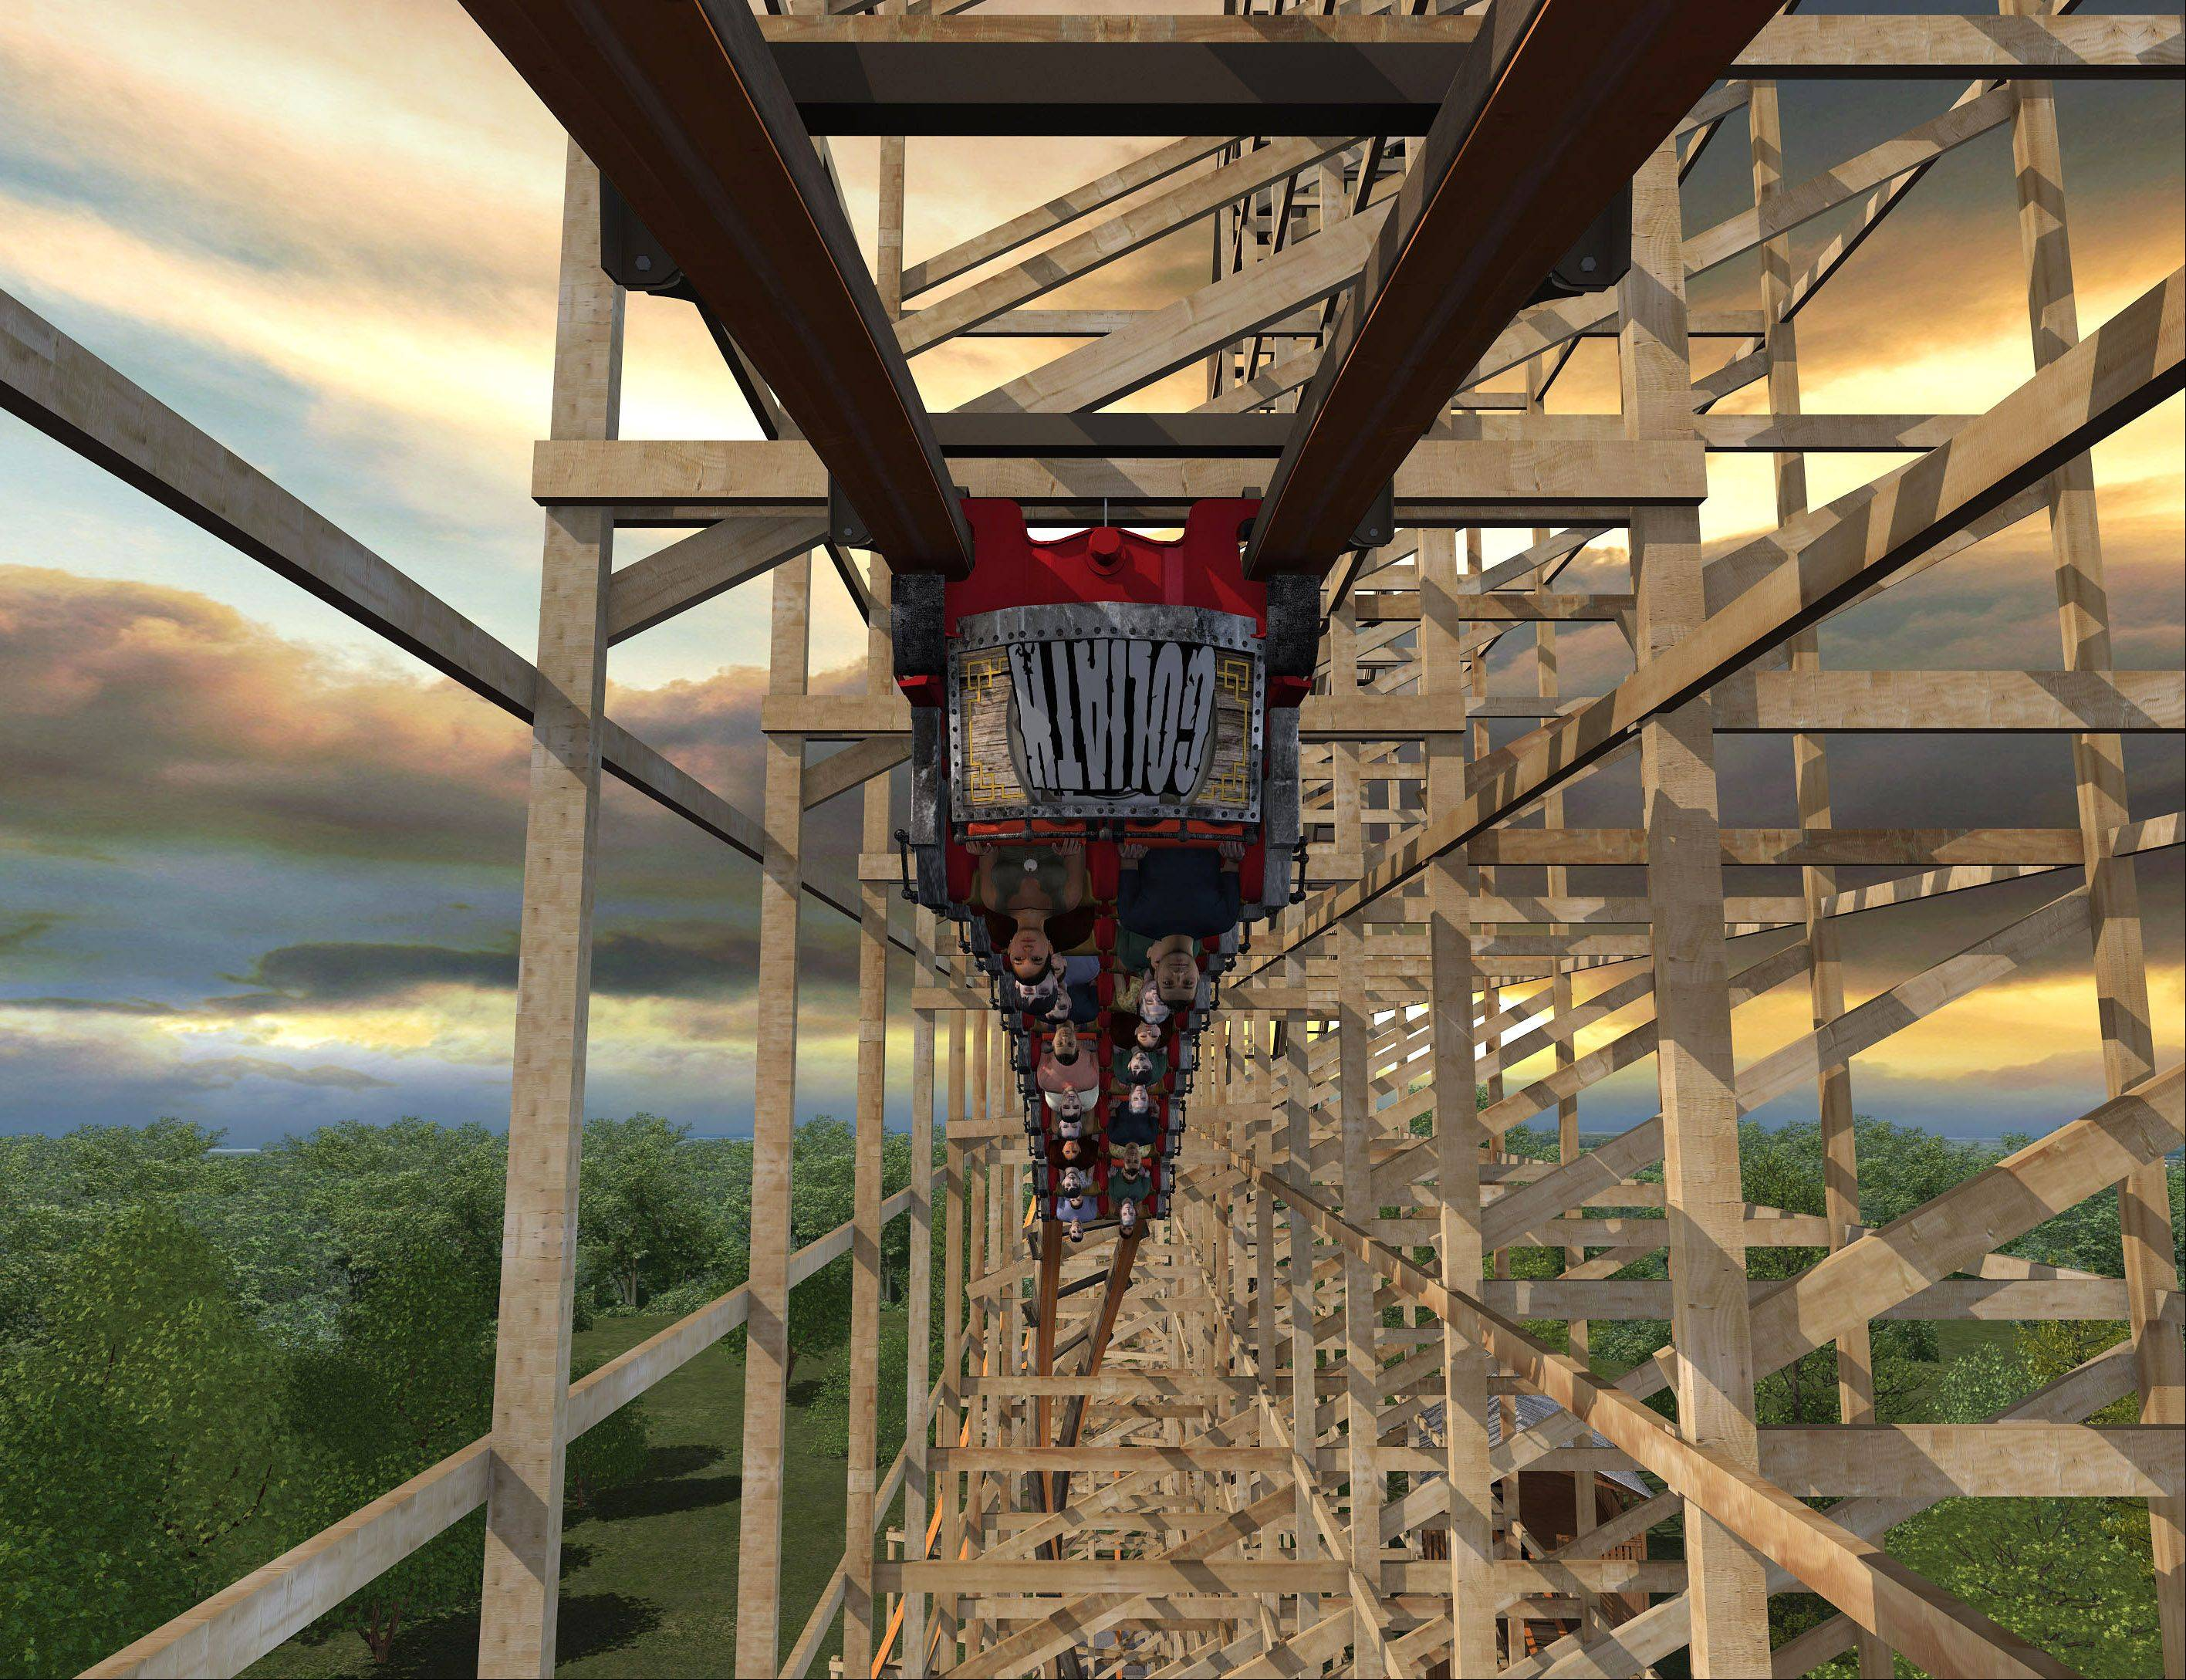 Riders will go upside down on the new Goliath wooden roller coaster planned for Six Flags Great America in Gurnee. The Gurnee village board on Monday formally approved Six Flags' plans to build the coaster.